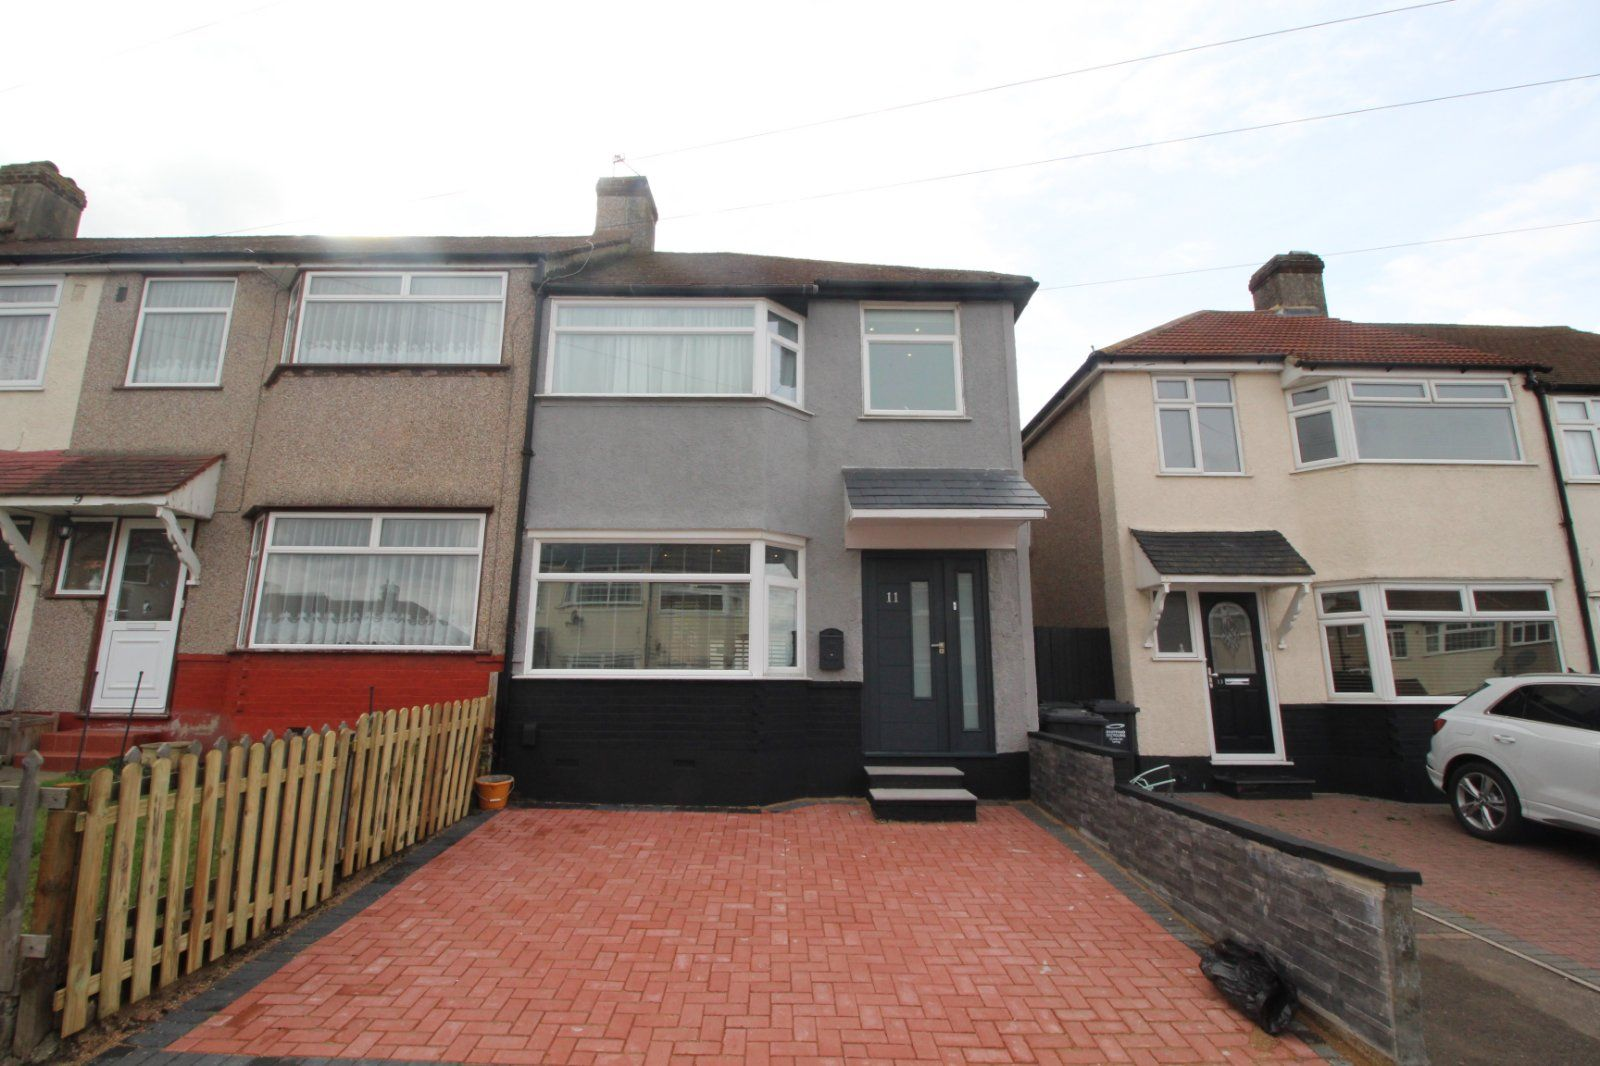 Property photo 1 of 13. Your Move Dartford